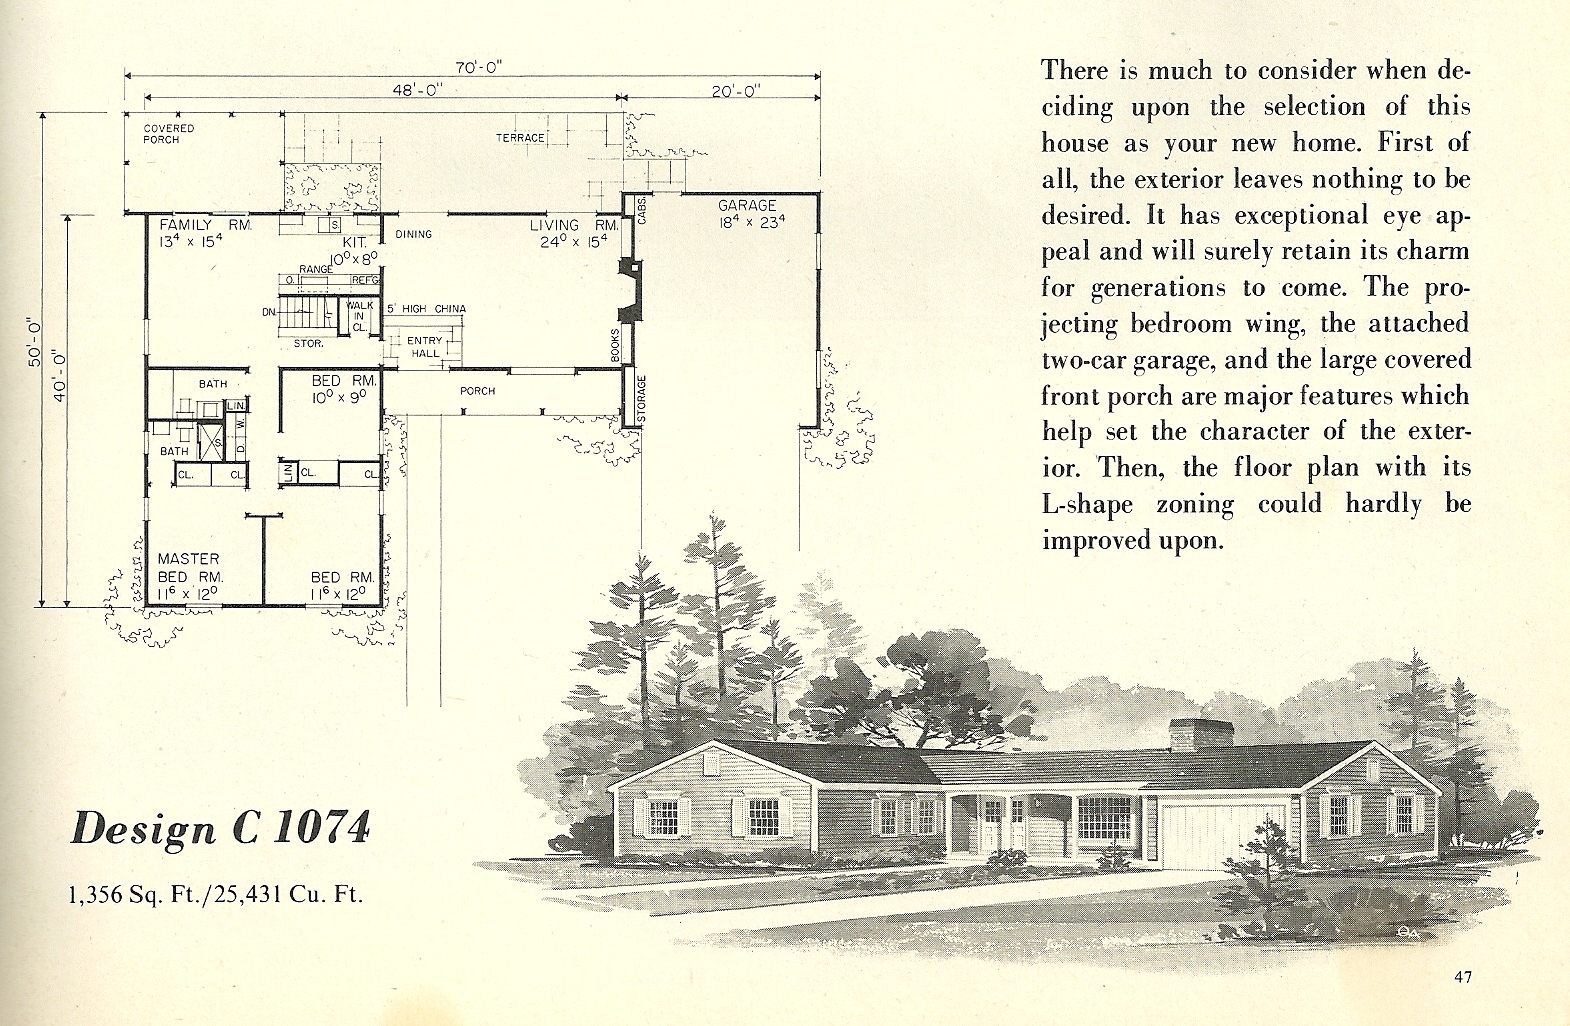 Vintage house plans 1074 antique alter ego for Vintage floor plans